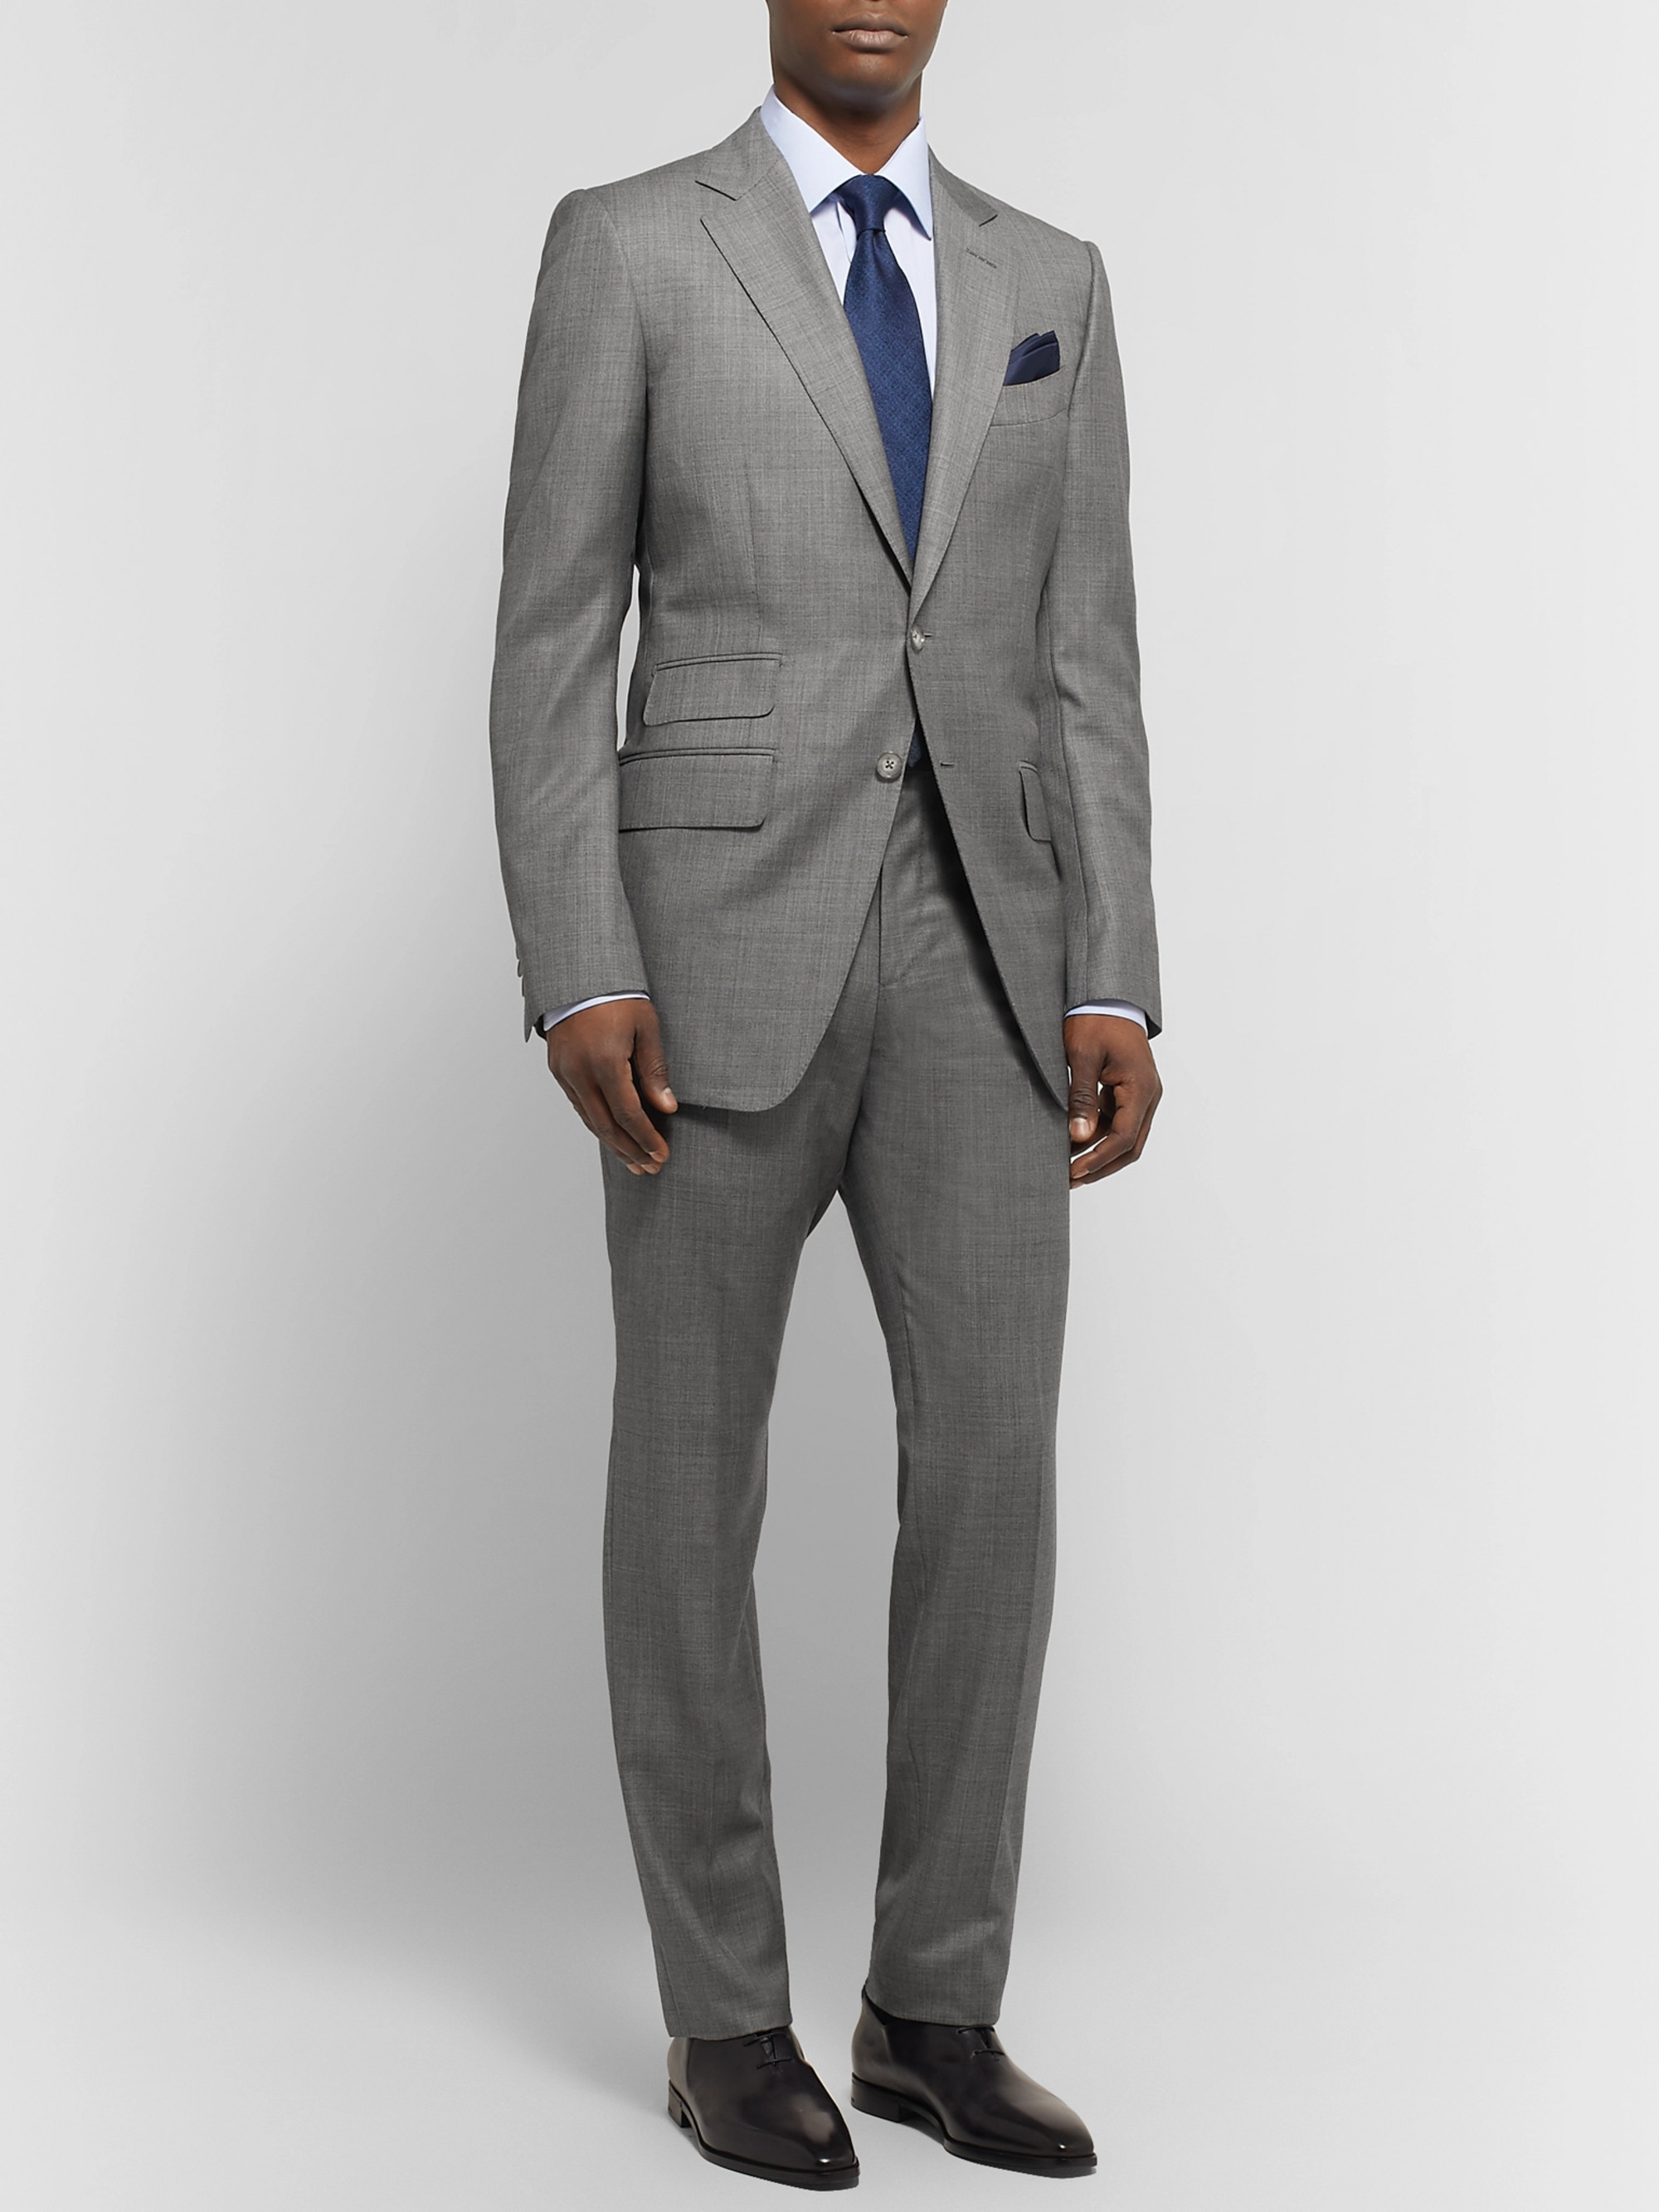 59d1a72ca2b64 TOM FORD Grey O'Connor Slim-Fit Super 110s Wool-Sharkskin Suit Jacket